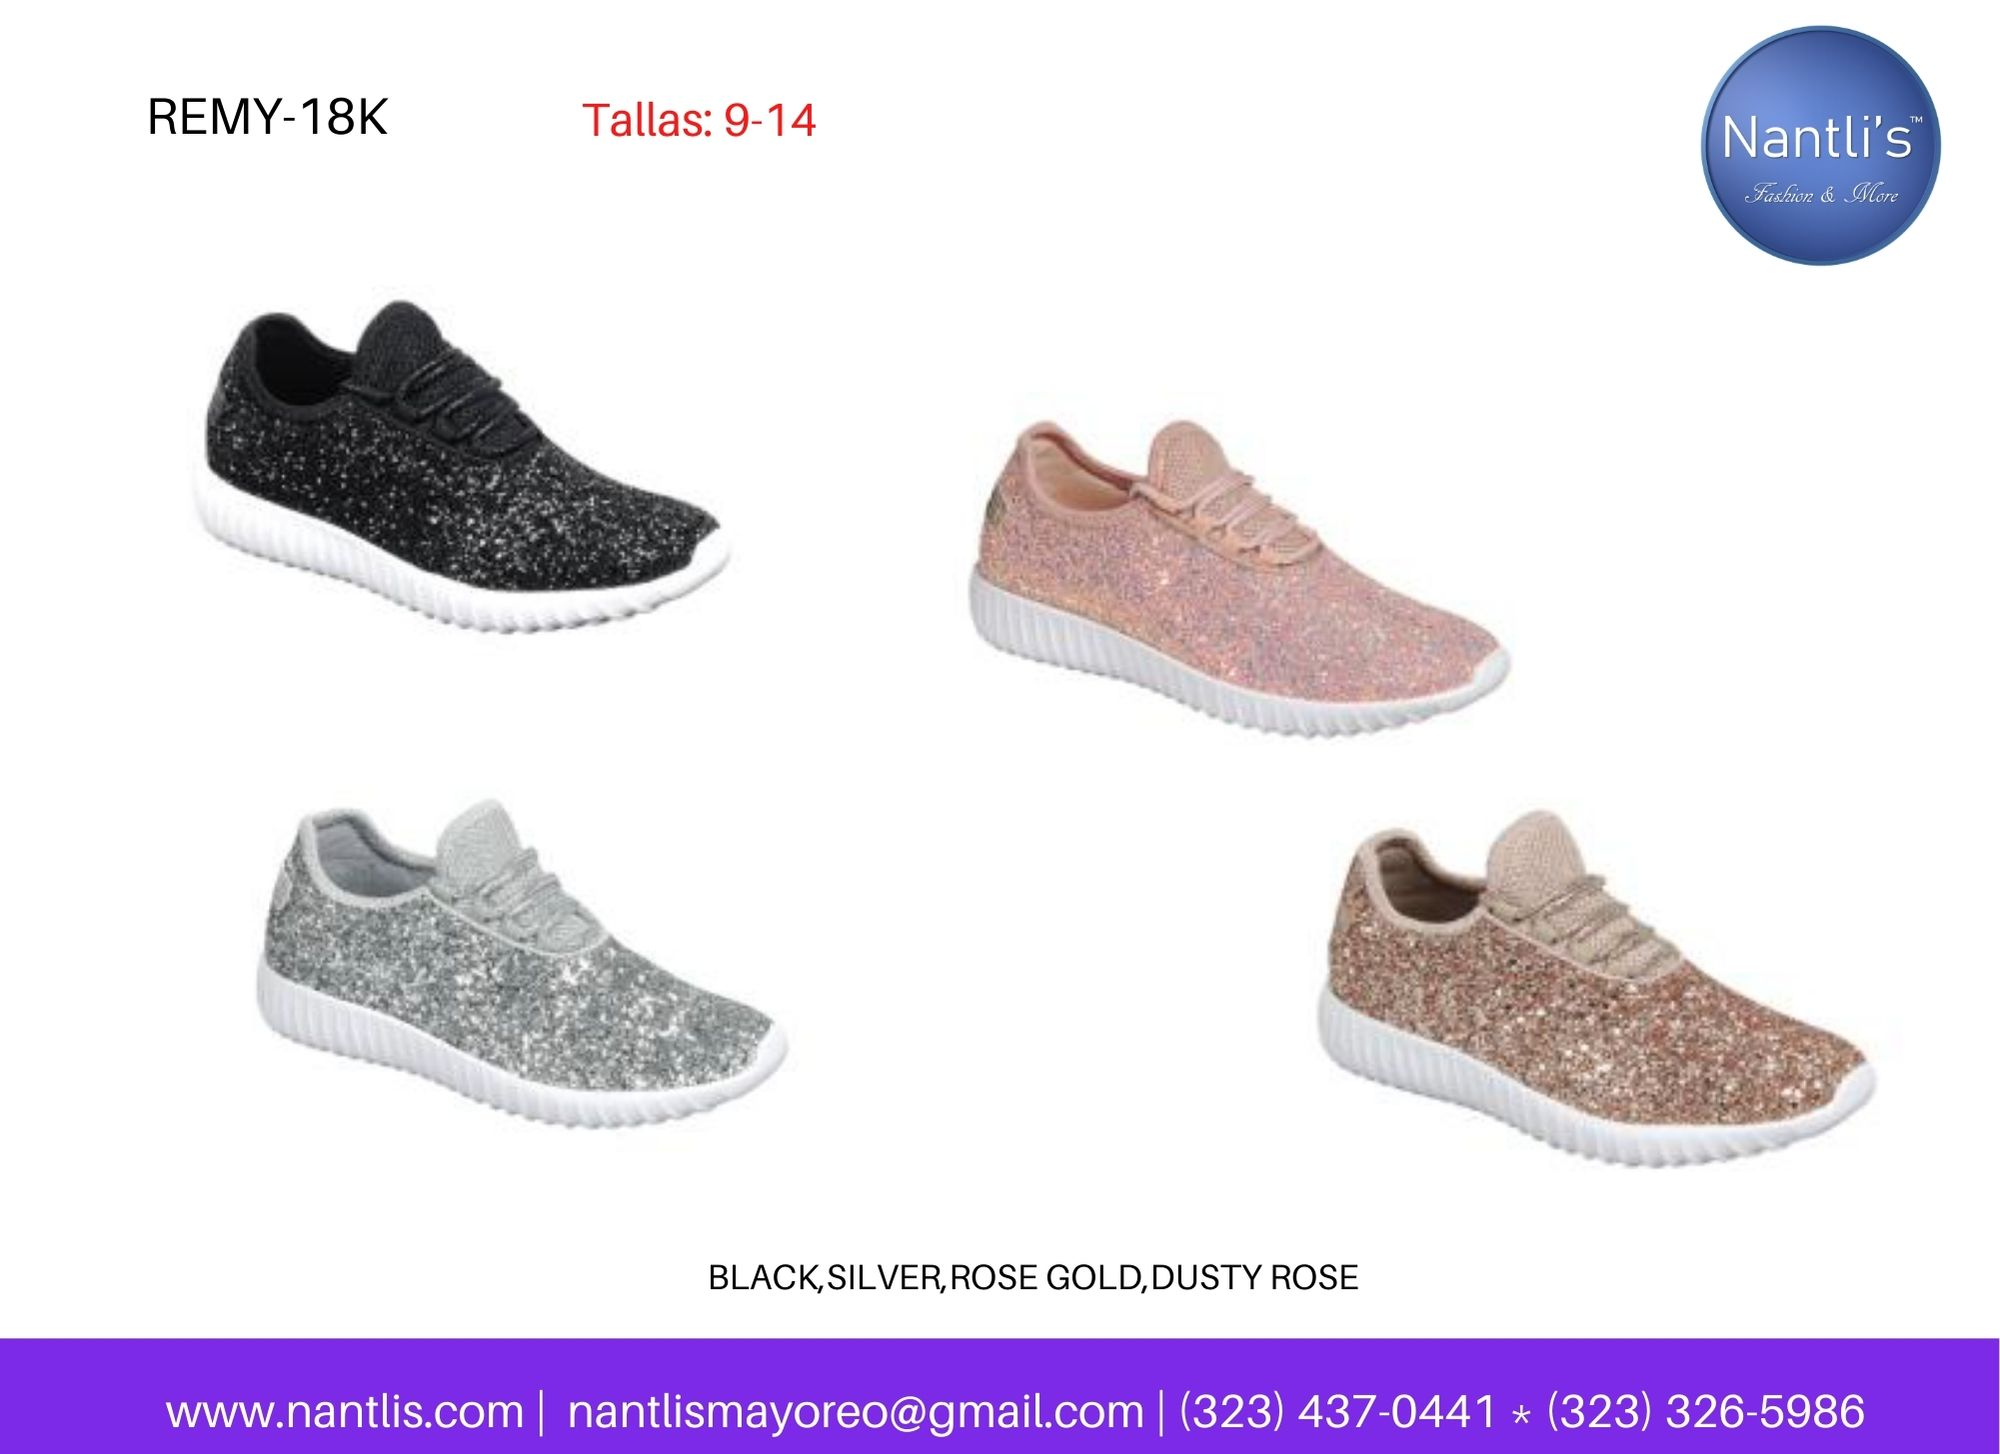 Catalogo Vol FL28 Tenis y Zapatos de ninas Mayoreo Wholesale girls shoes and tennis shoes for kids page 05